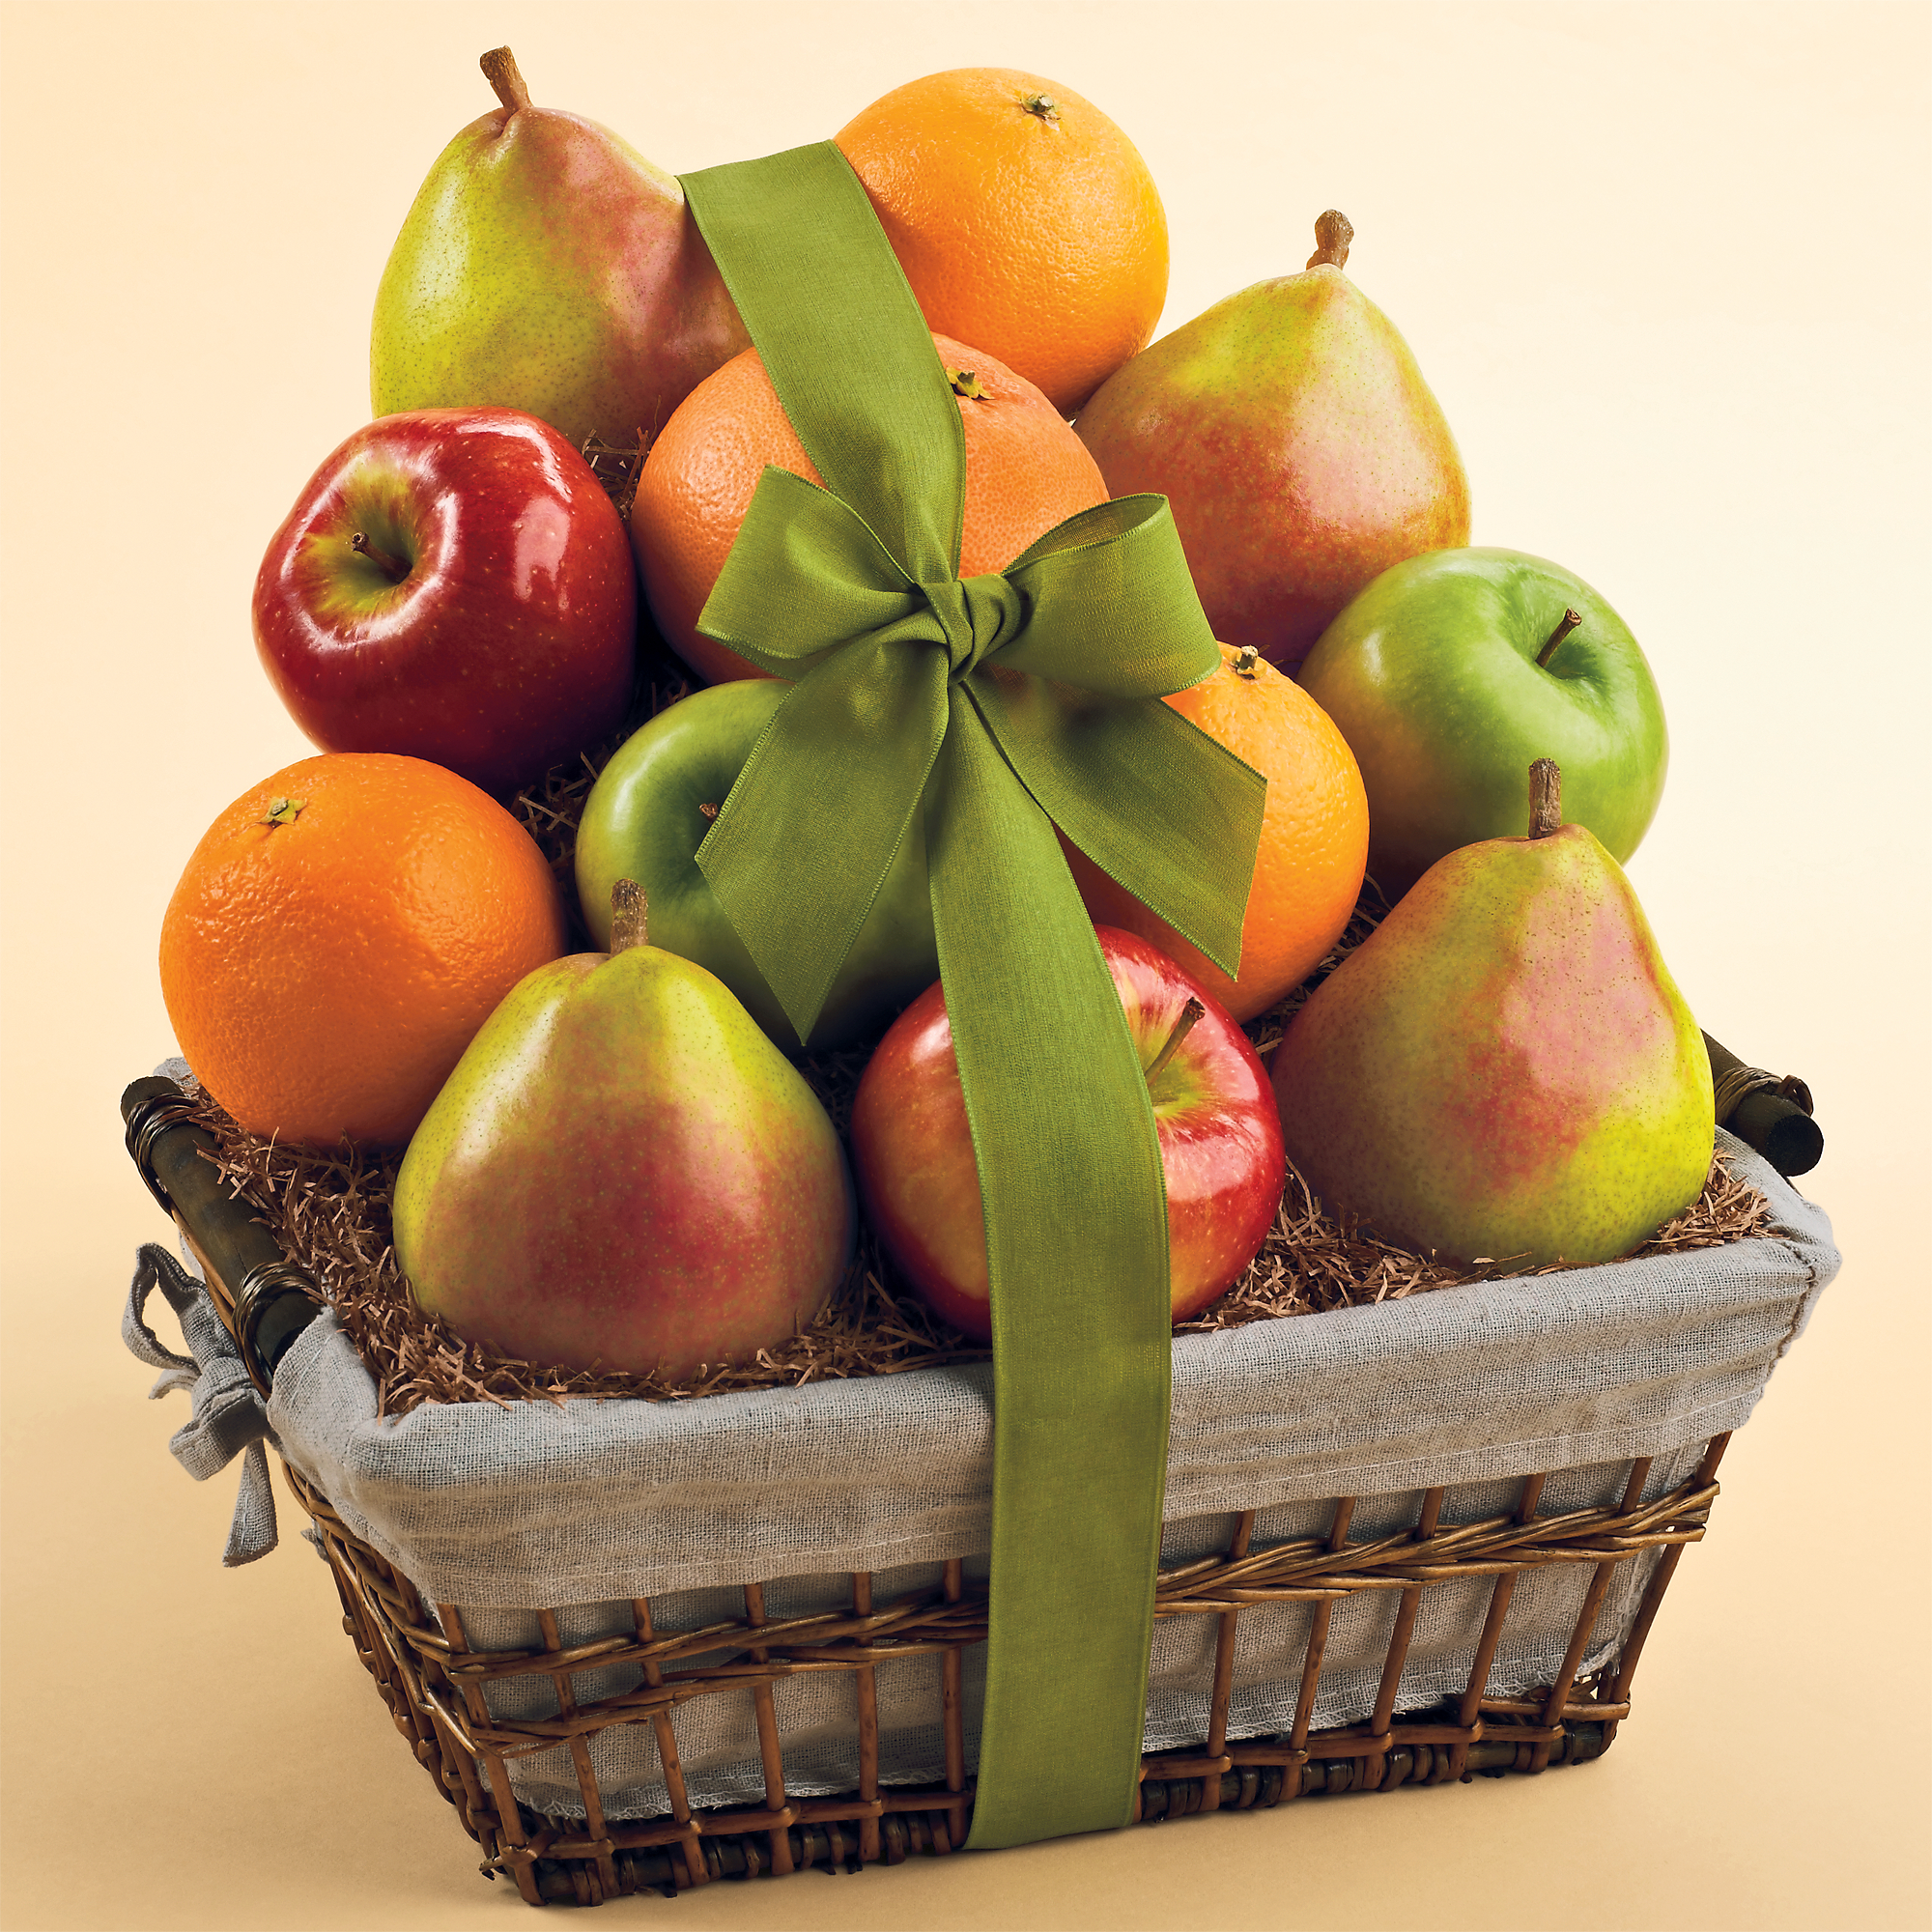 Gourmet Gift Basket is another gift basket site that caters to those that want options when choosing a gift. There are fruit baskets available on their website, but the selection is somewhat limited (only 10) and all of them offer a mixture of fruit and other gourmet treats, .